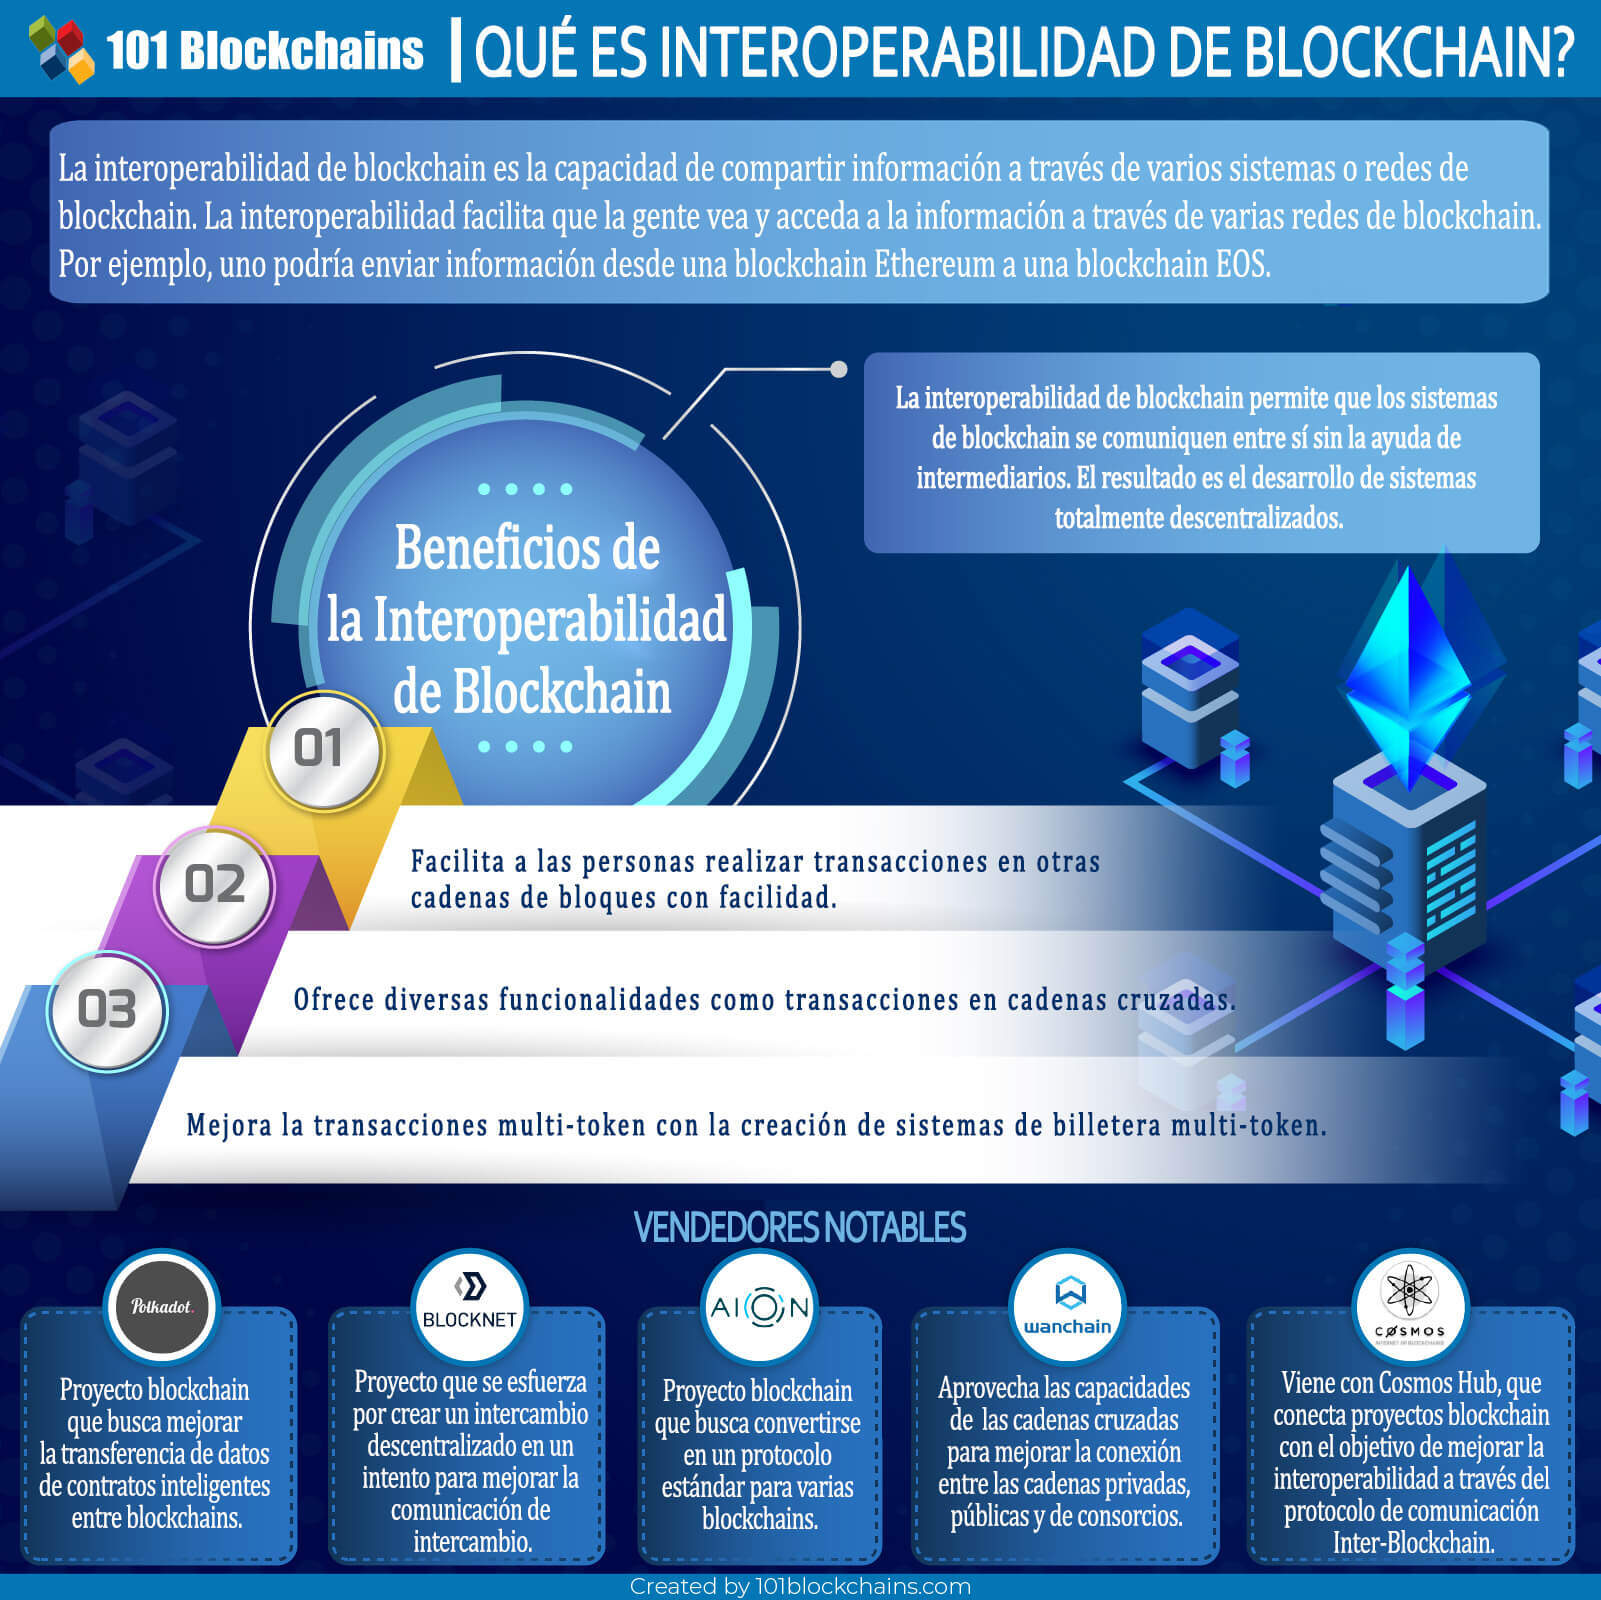 Interoperabilidad de blockchain